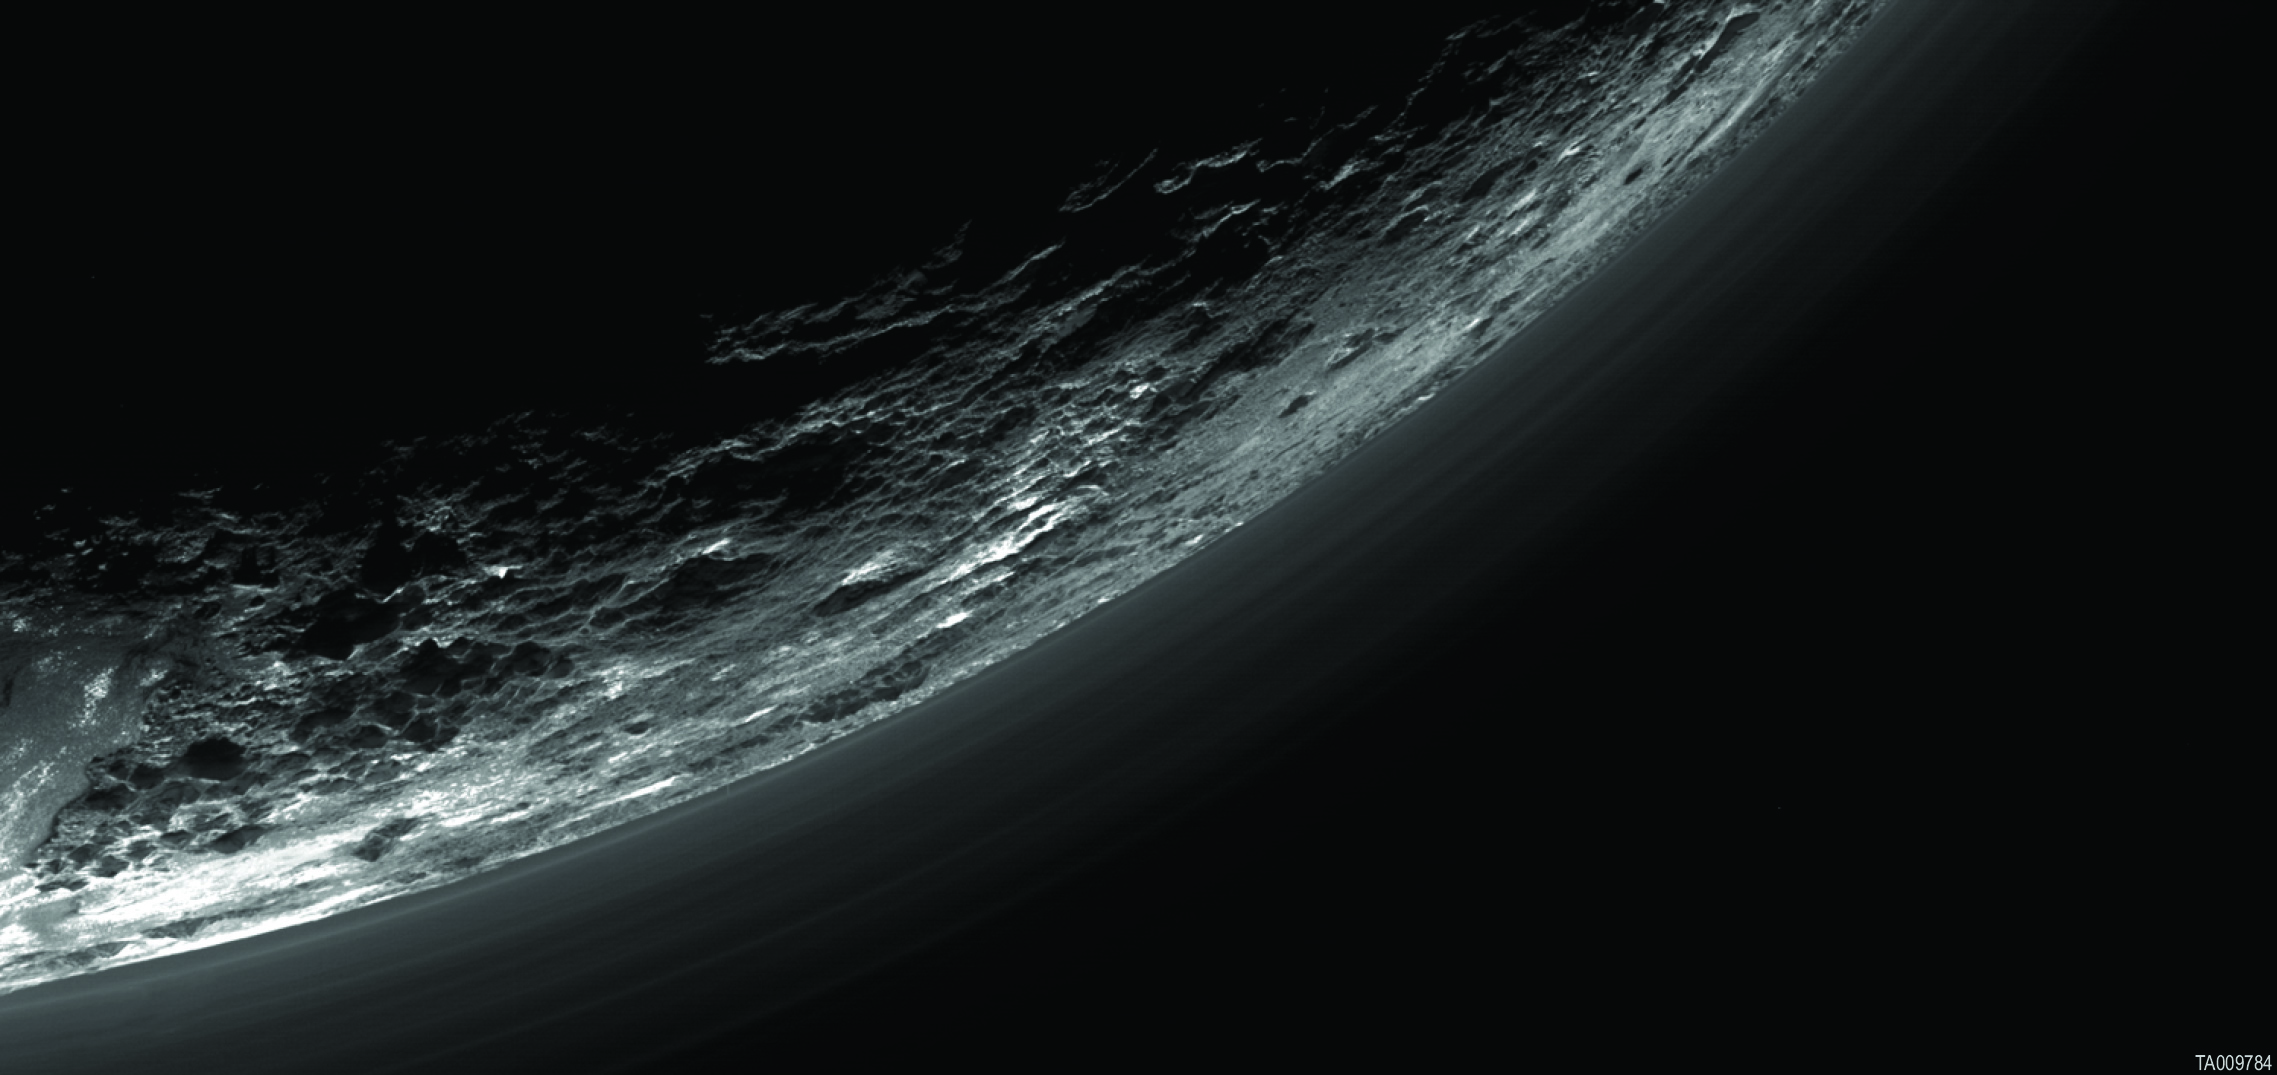 11. Pluto has a bizarre atmosphere